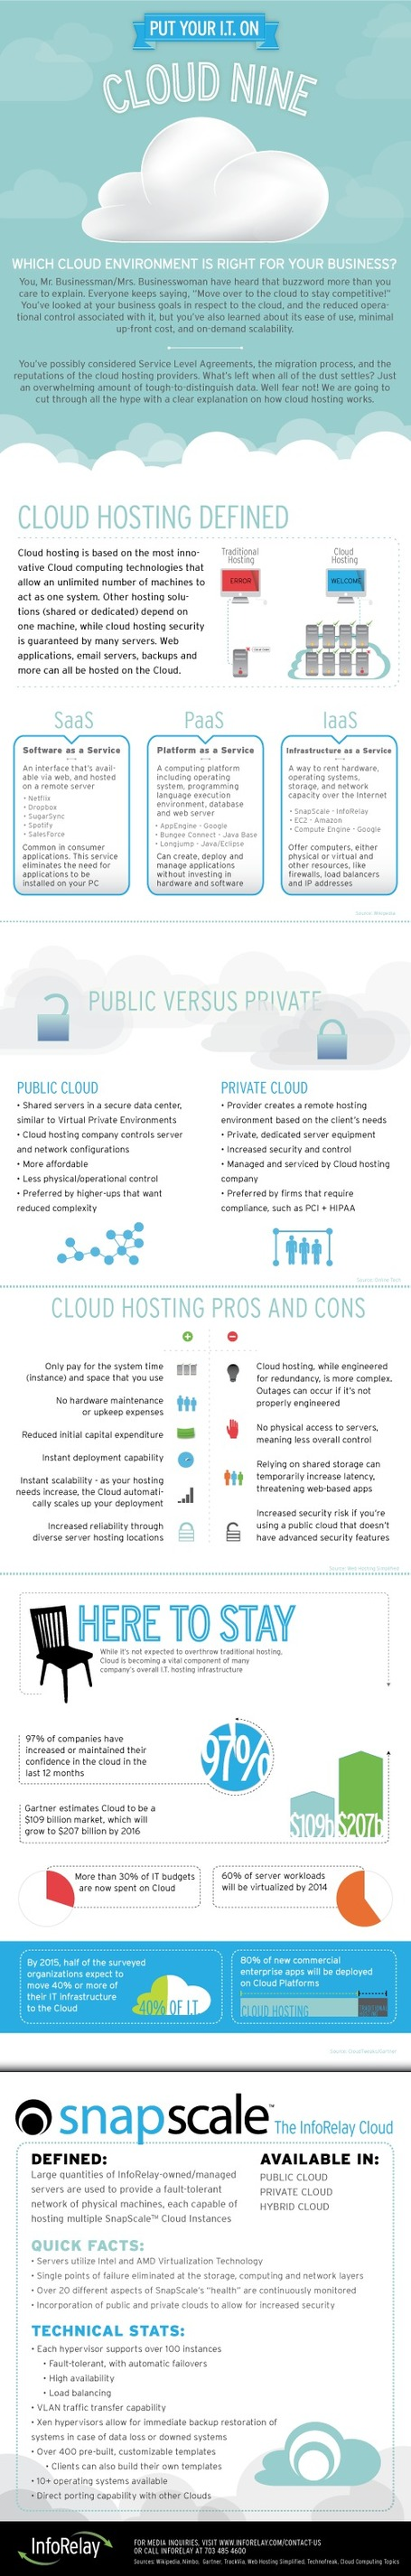 INFOGRAPHIC: Put Your I.T On Cloud Nine | Cloud Central | Scoop.it